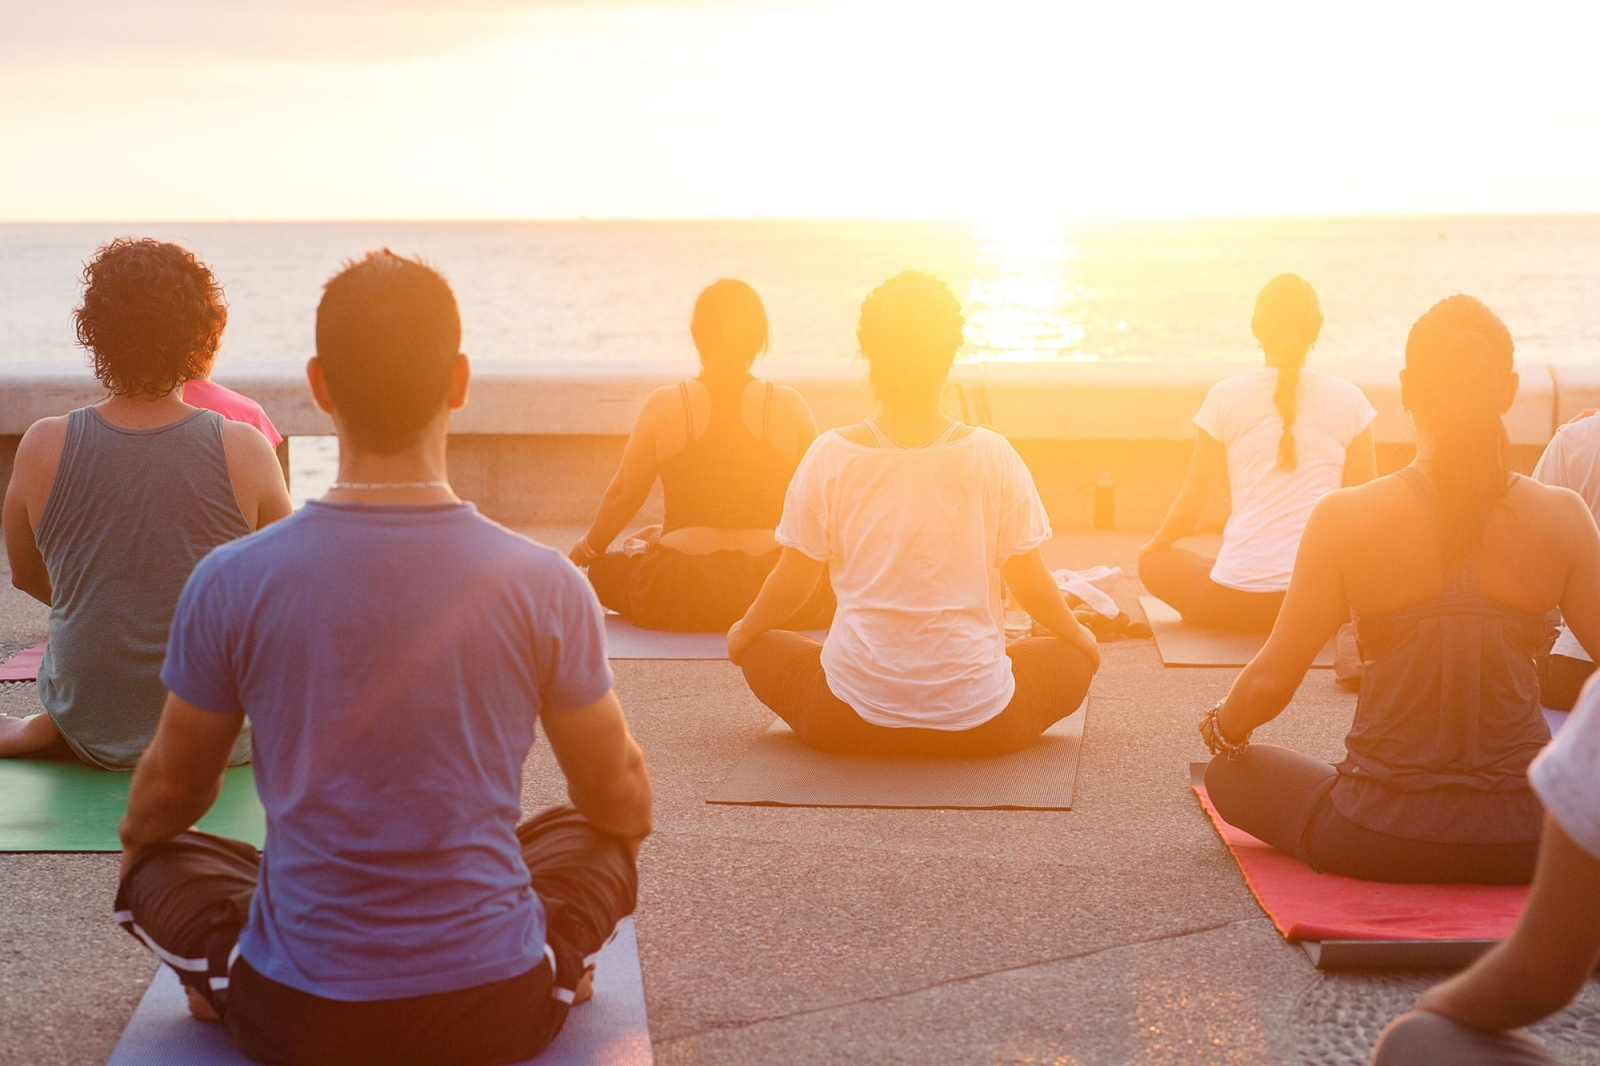 photo of people meditating while looking towards the sun